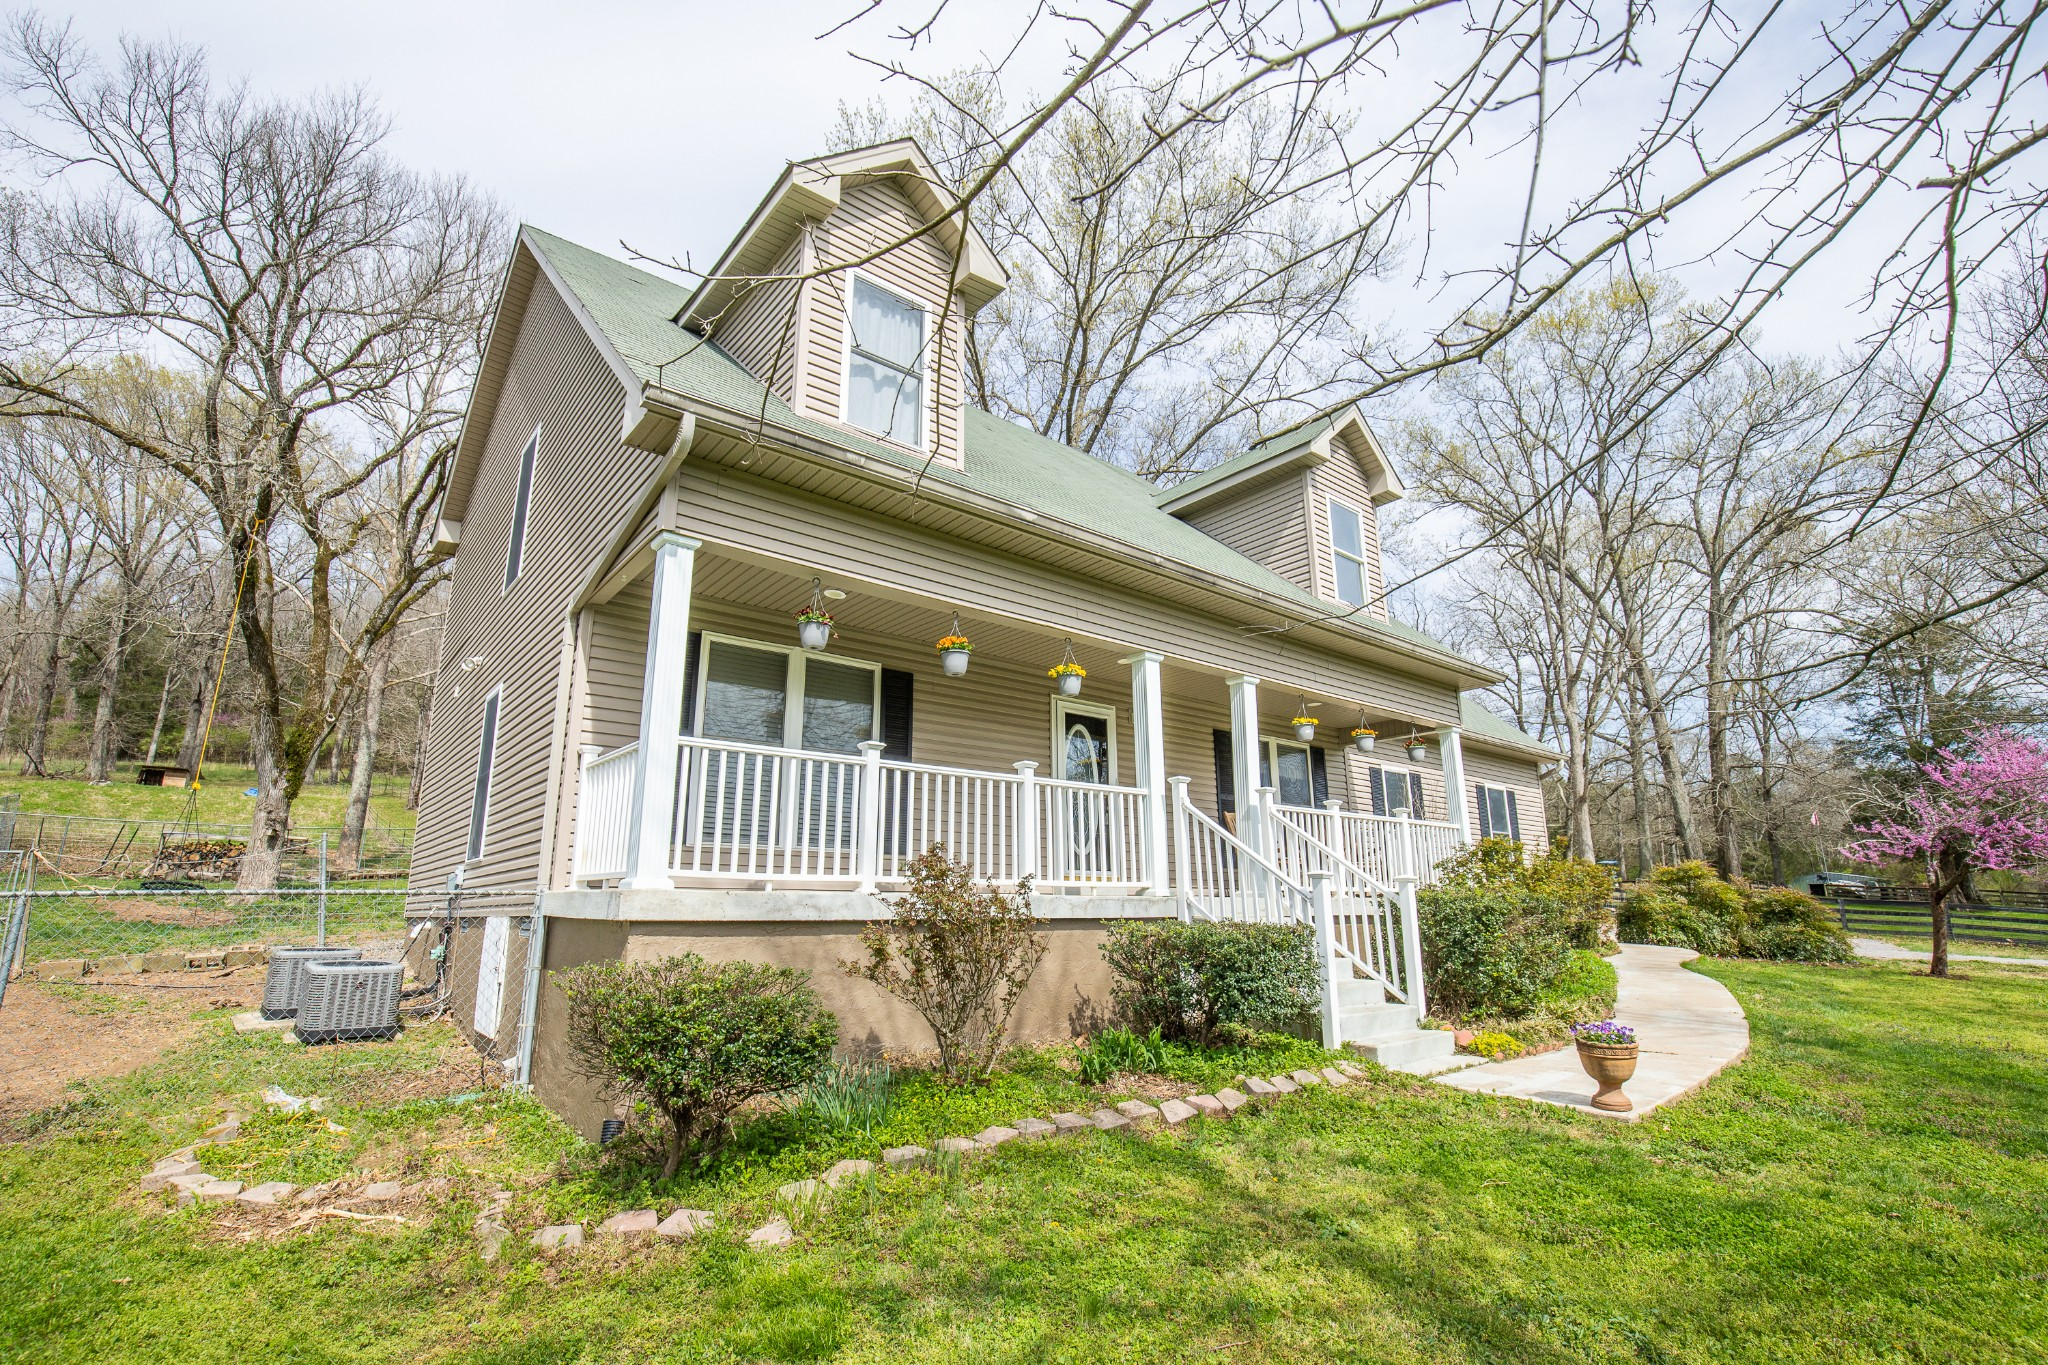 6975 Old Hickory Blvd Property Photo - Whites Creek, TN real estate listing